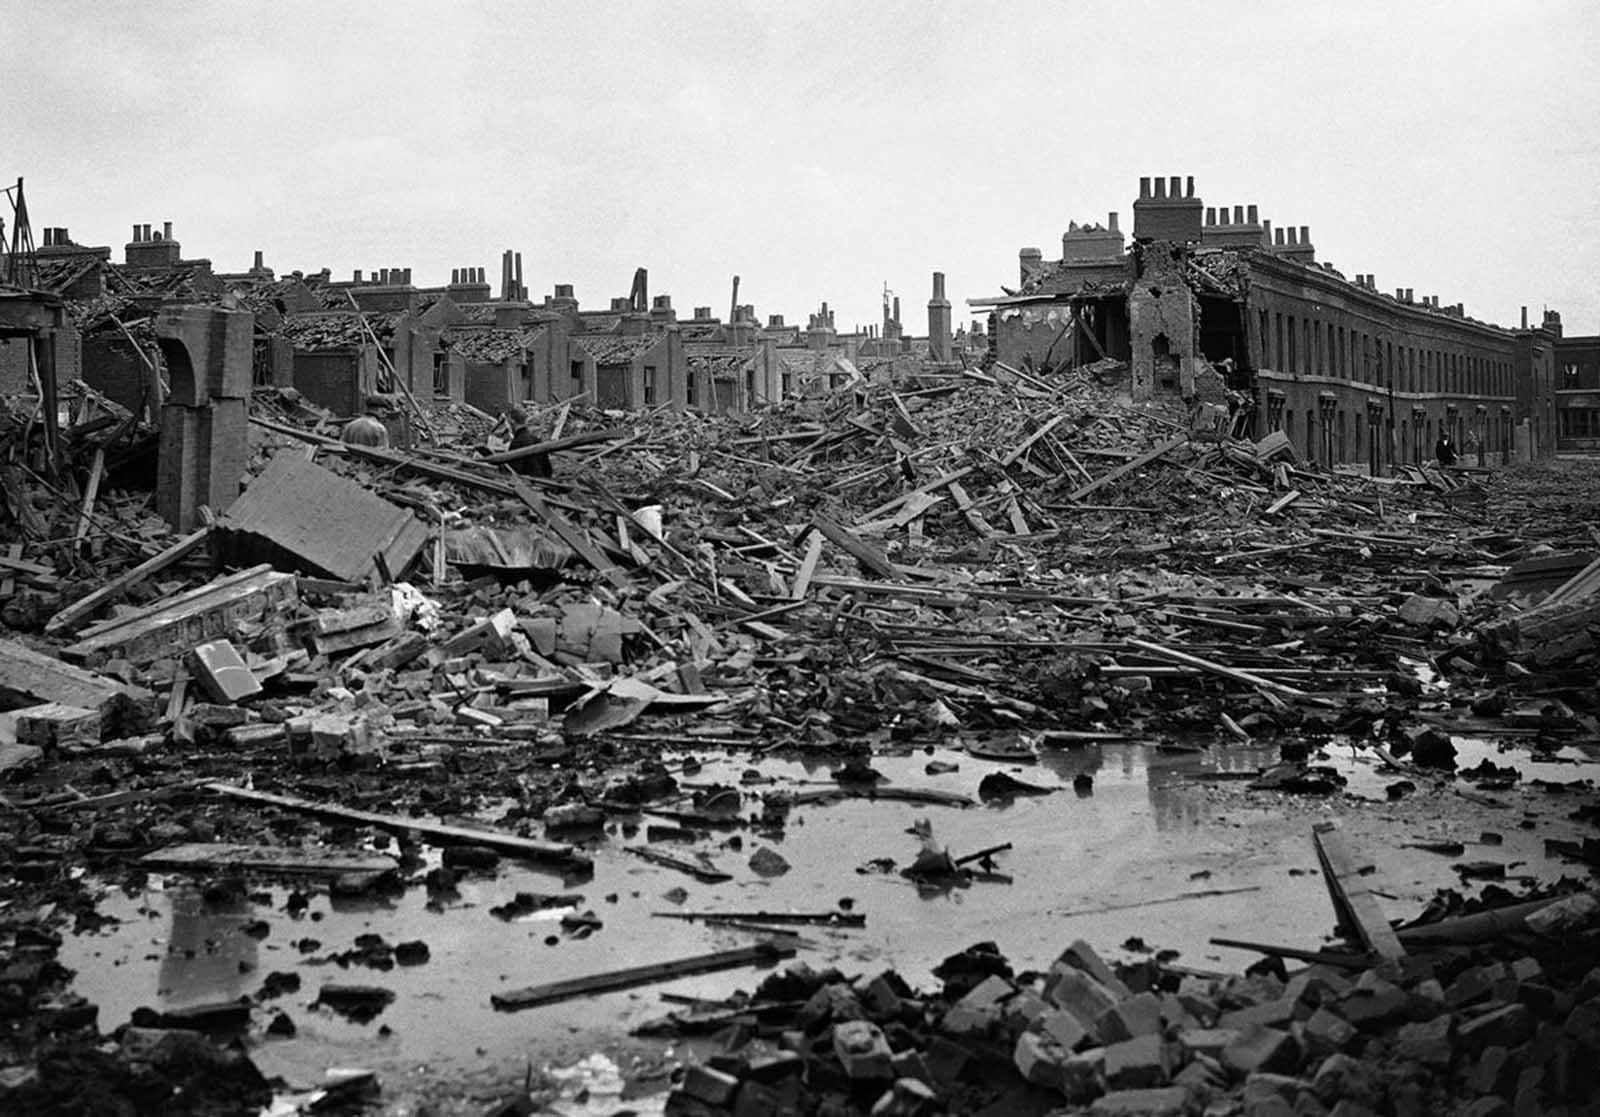 A scene of devastation in the Dockland area of London attacked by German bomber on September 17, 1940.